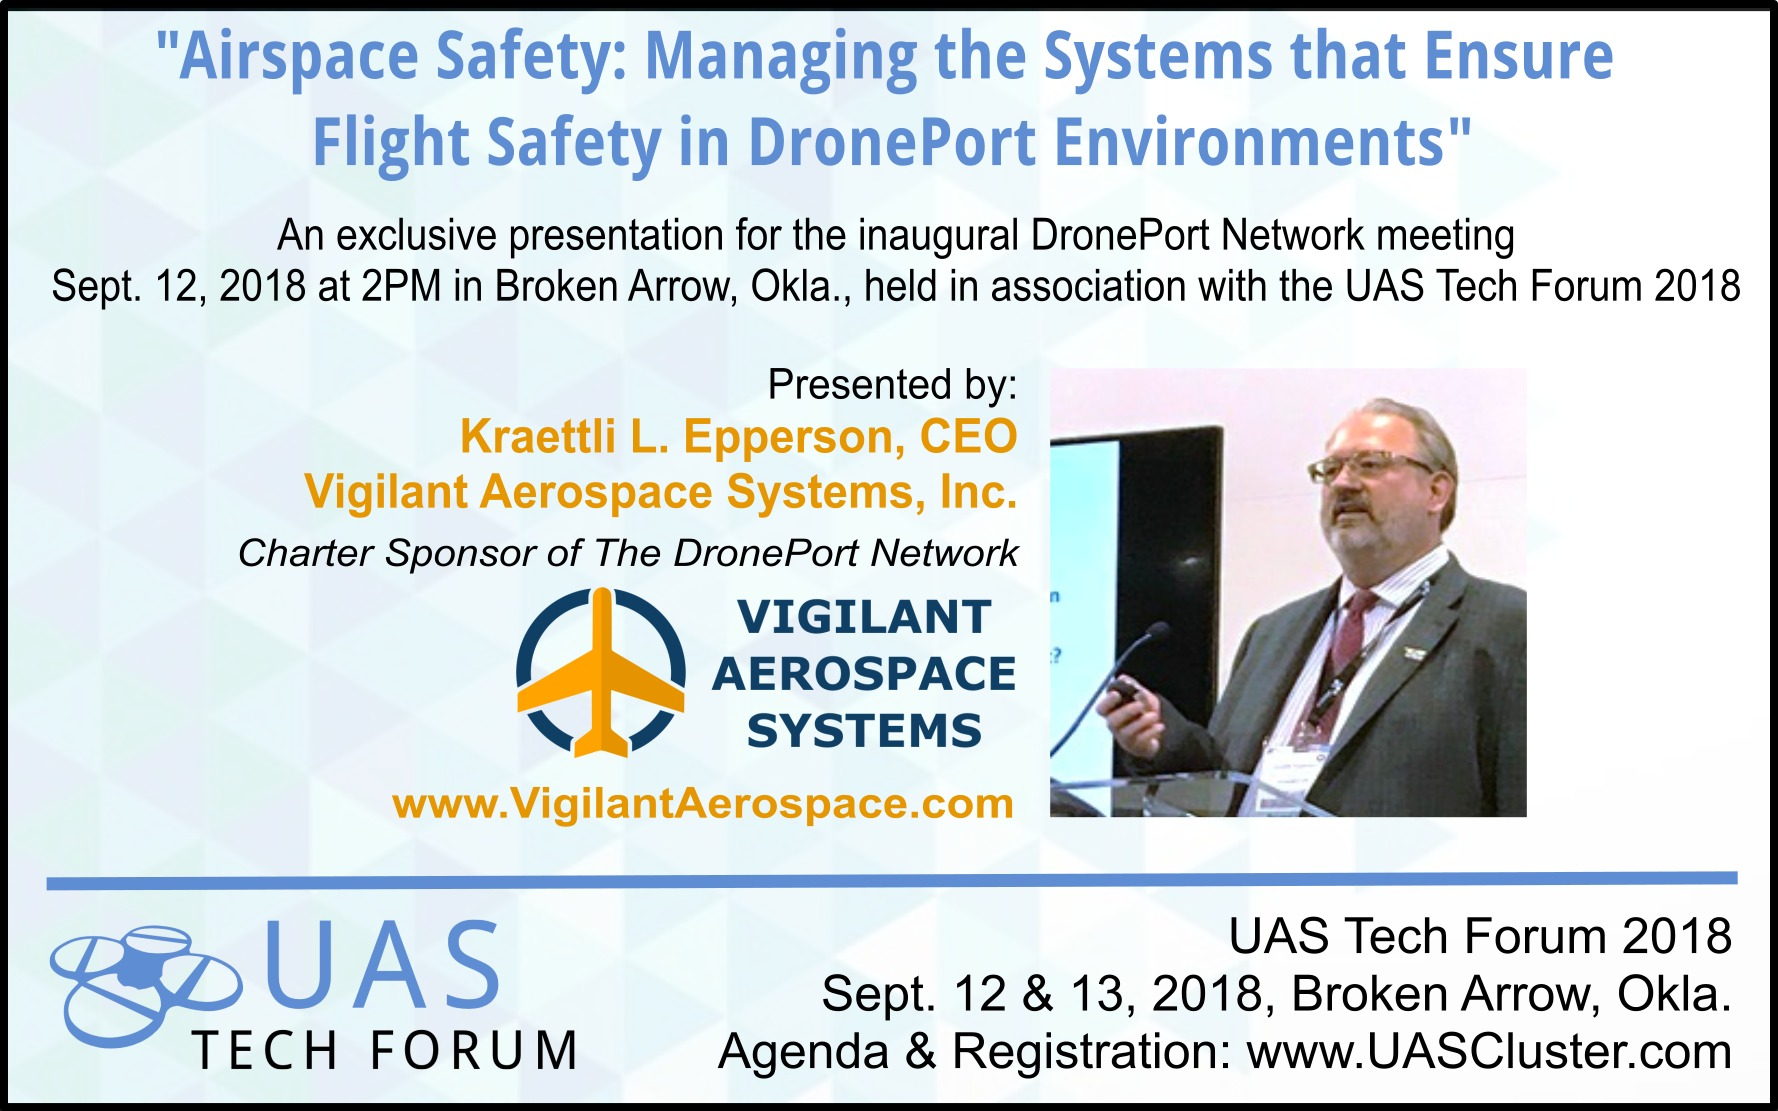 Airspace Safety: Managing the Systems that Ensure Flight